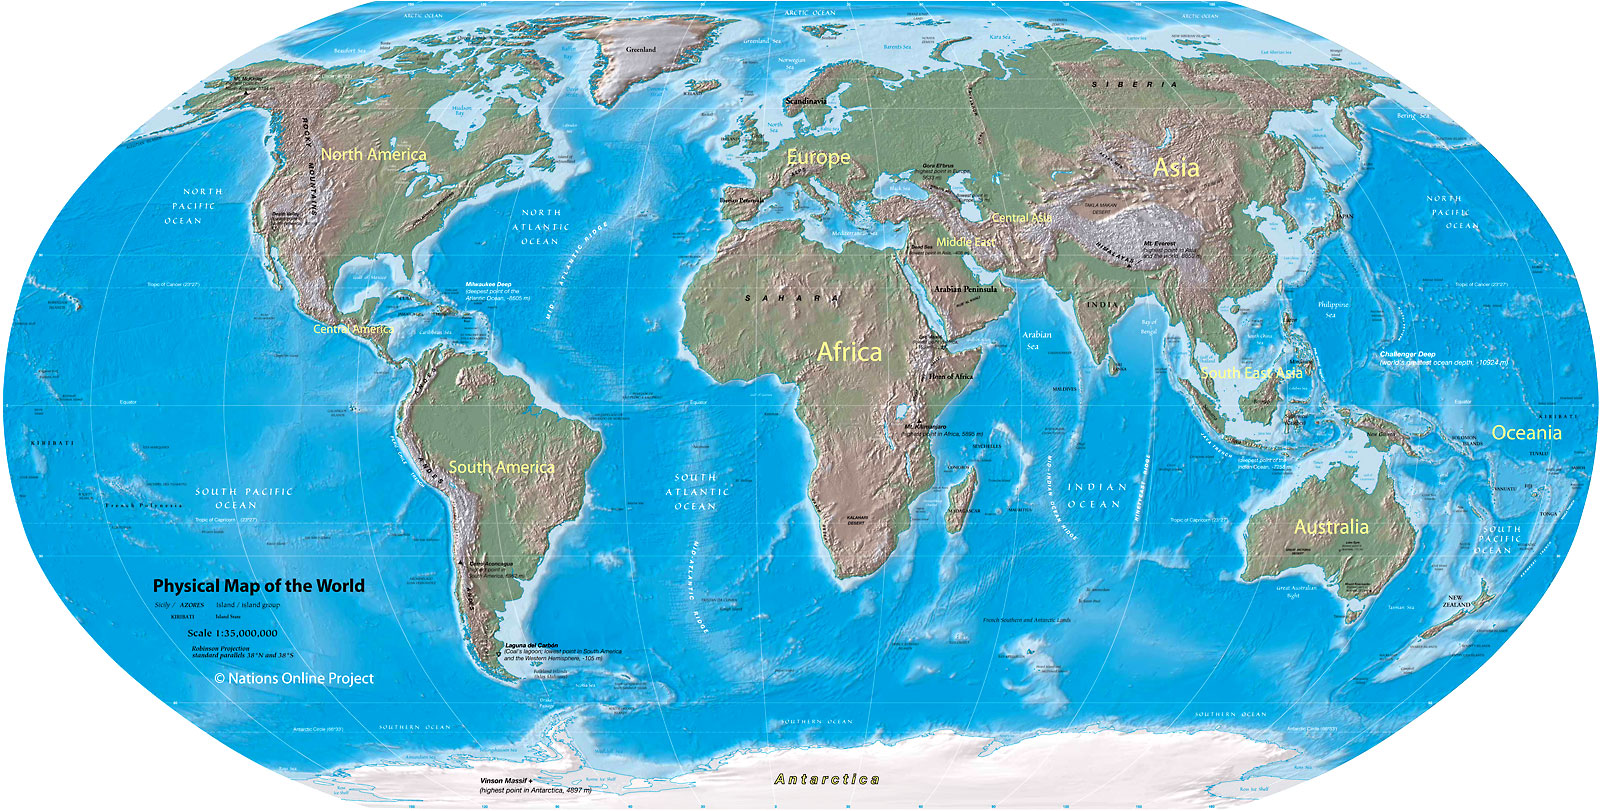 World Map Physical Map Of The World Nations Online Project - Globe map of the world